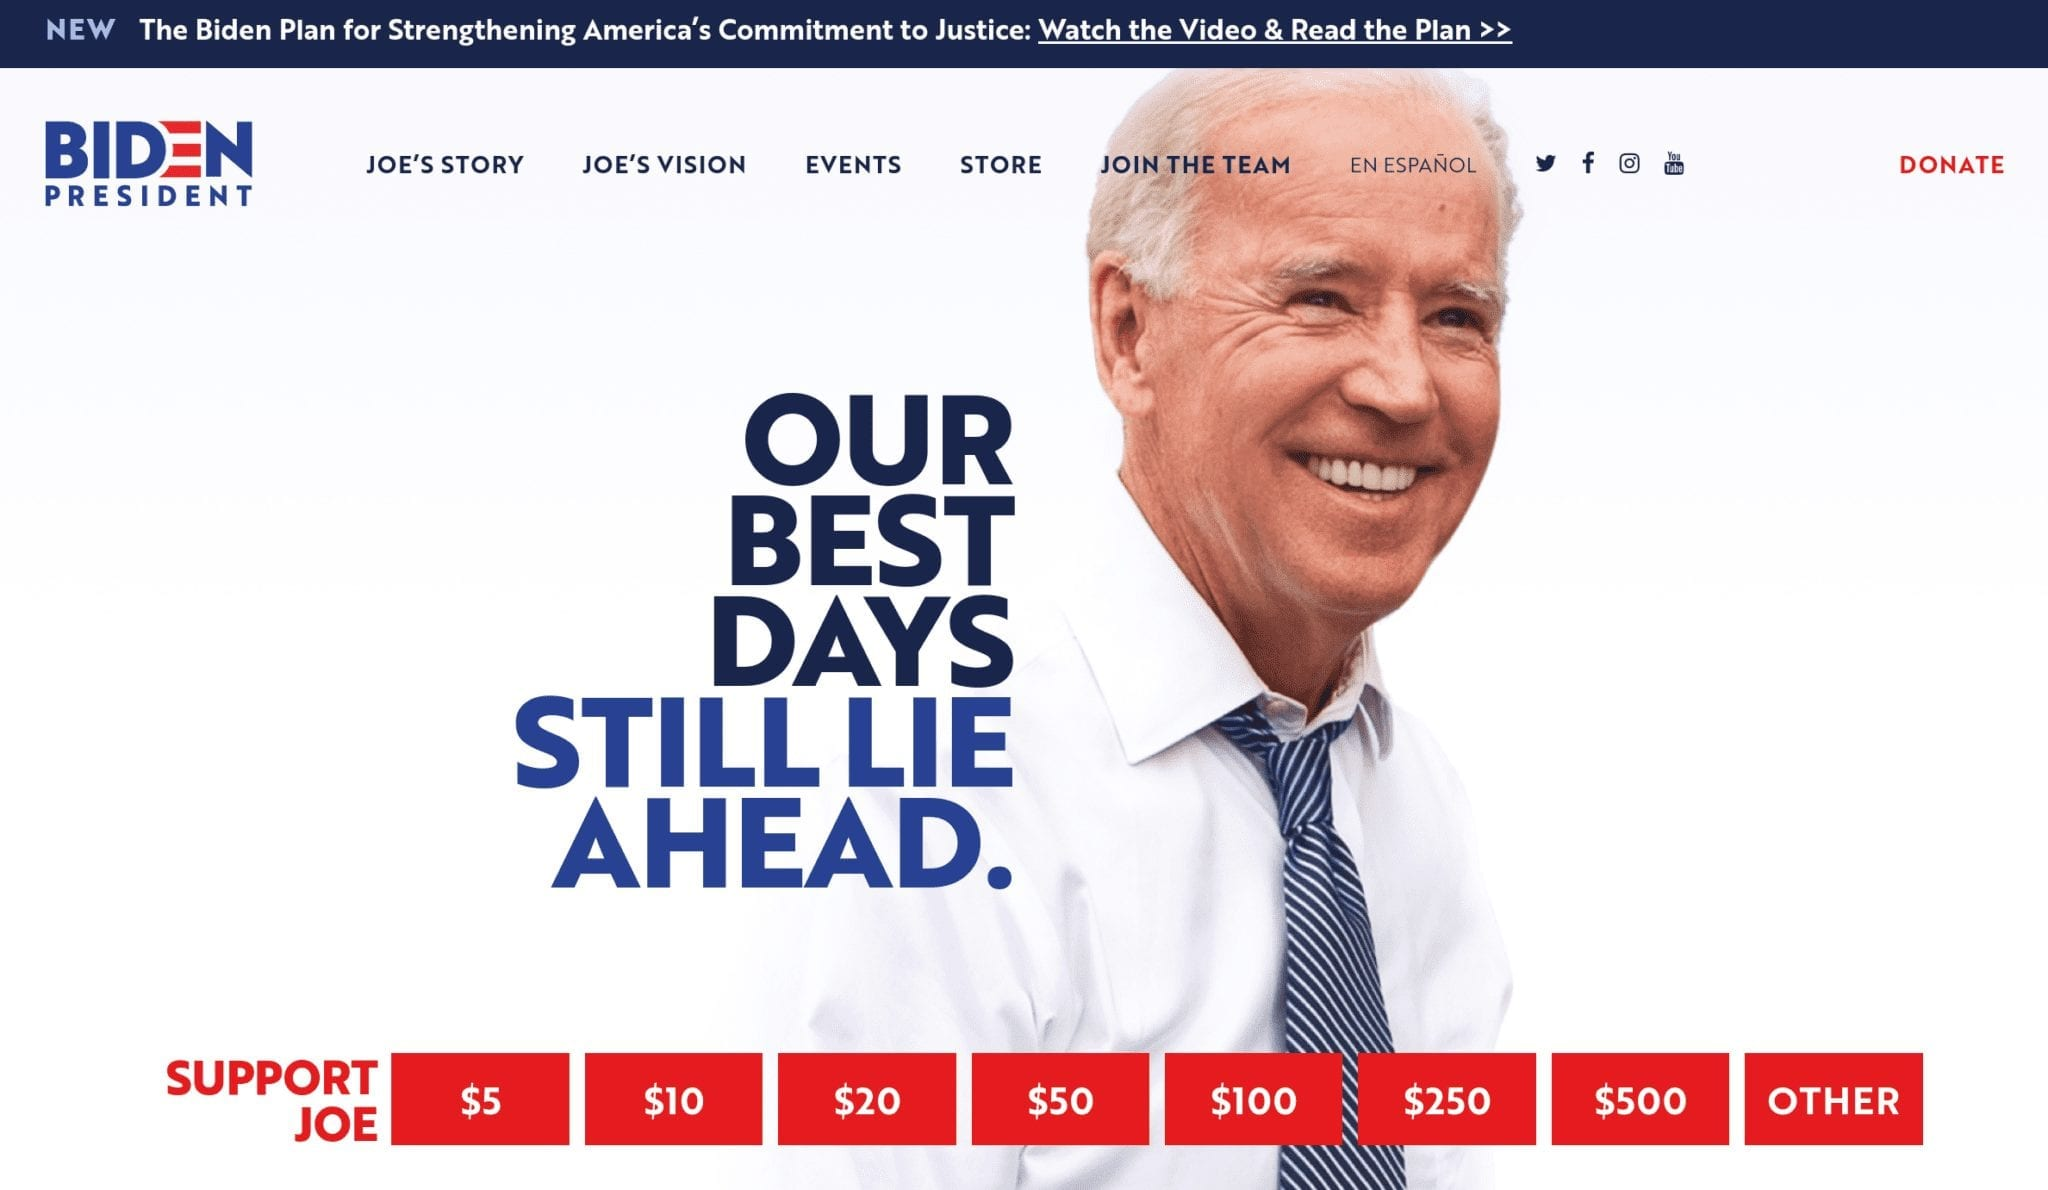 Joe Biden 2020 campaign website